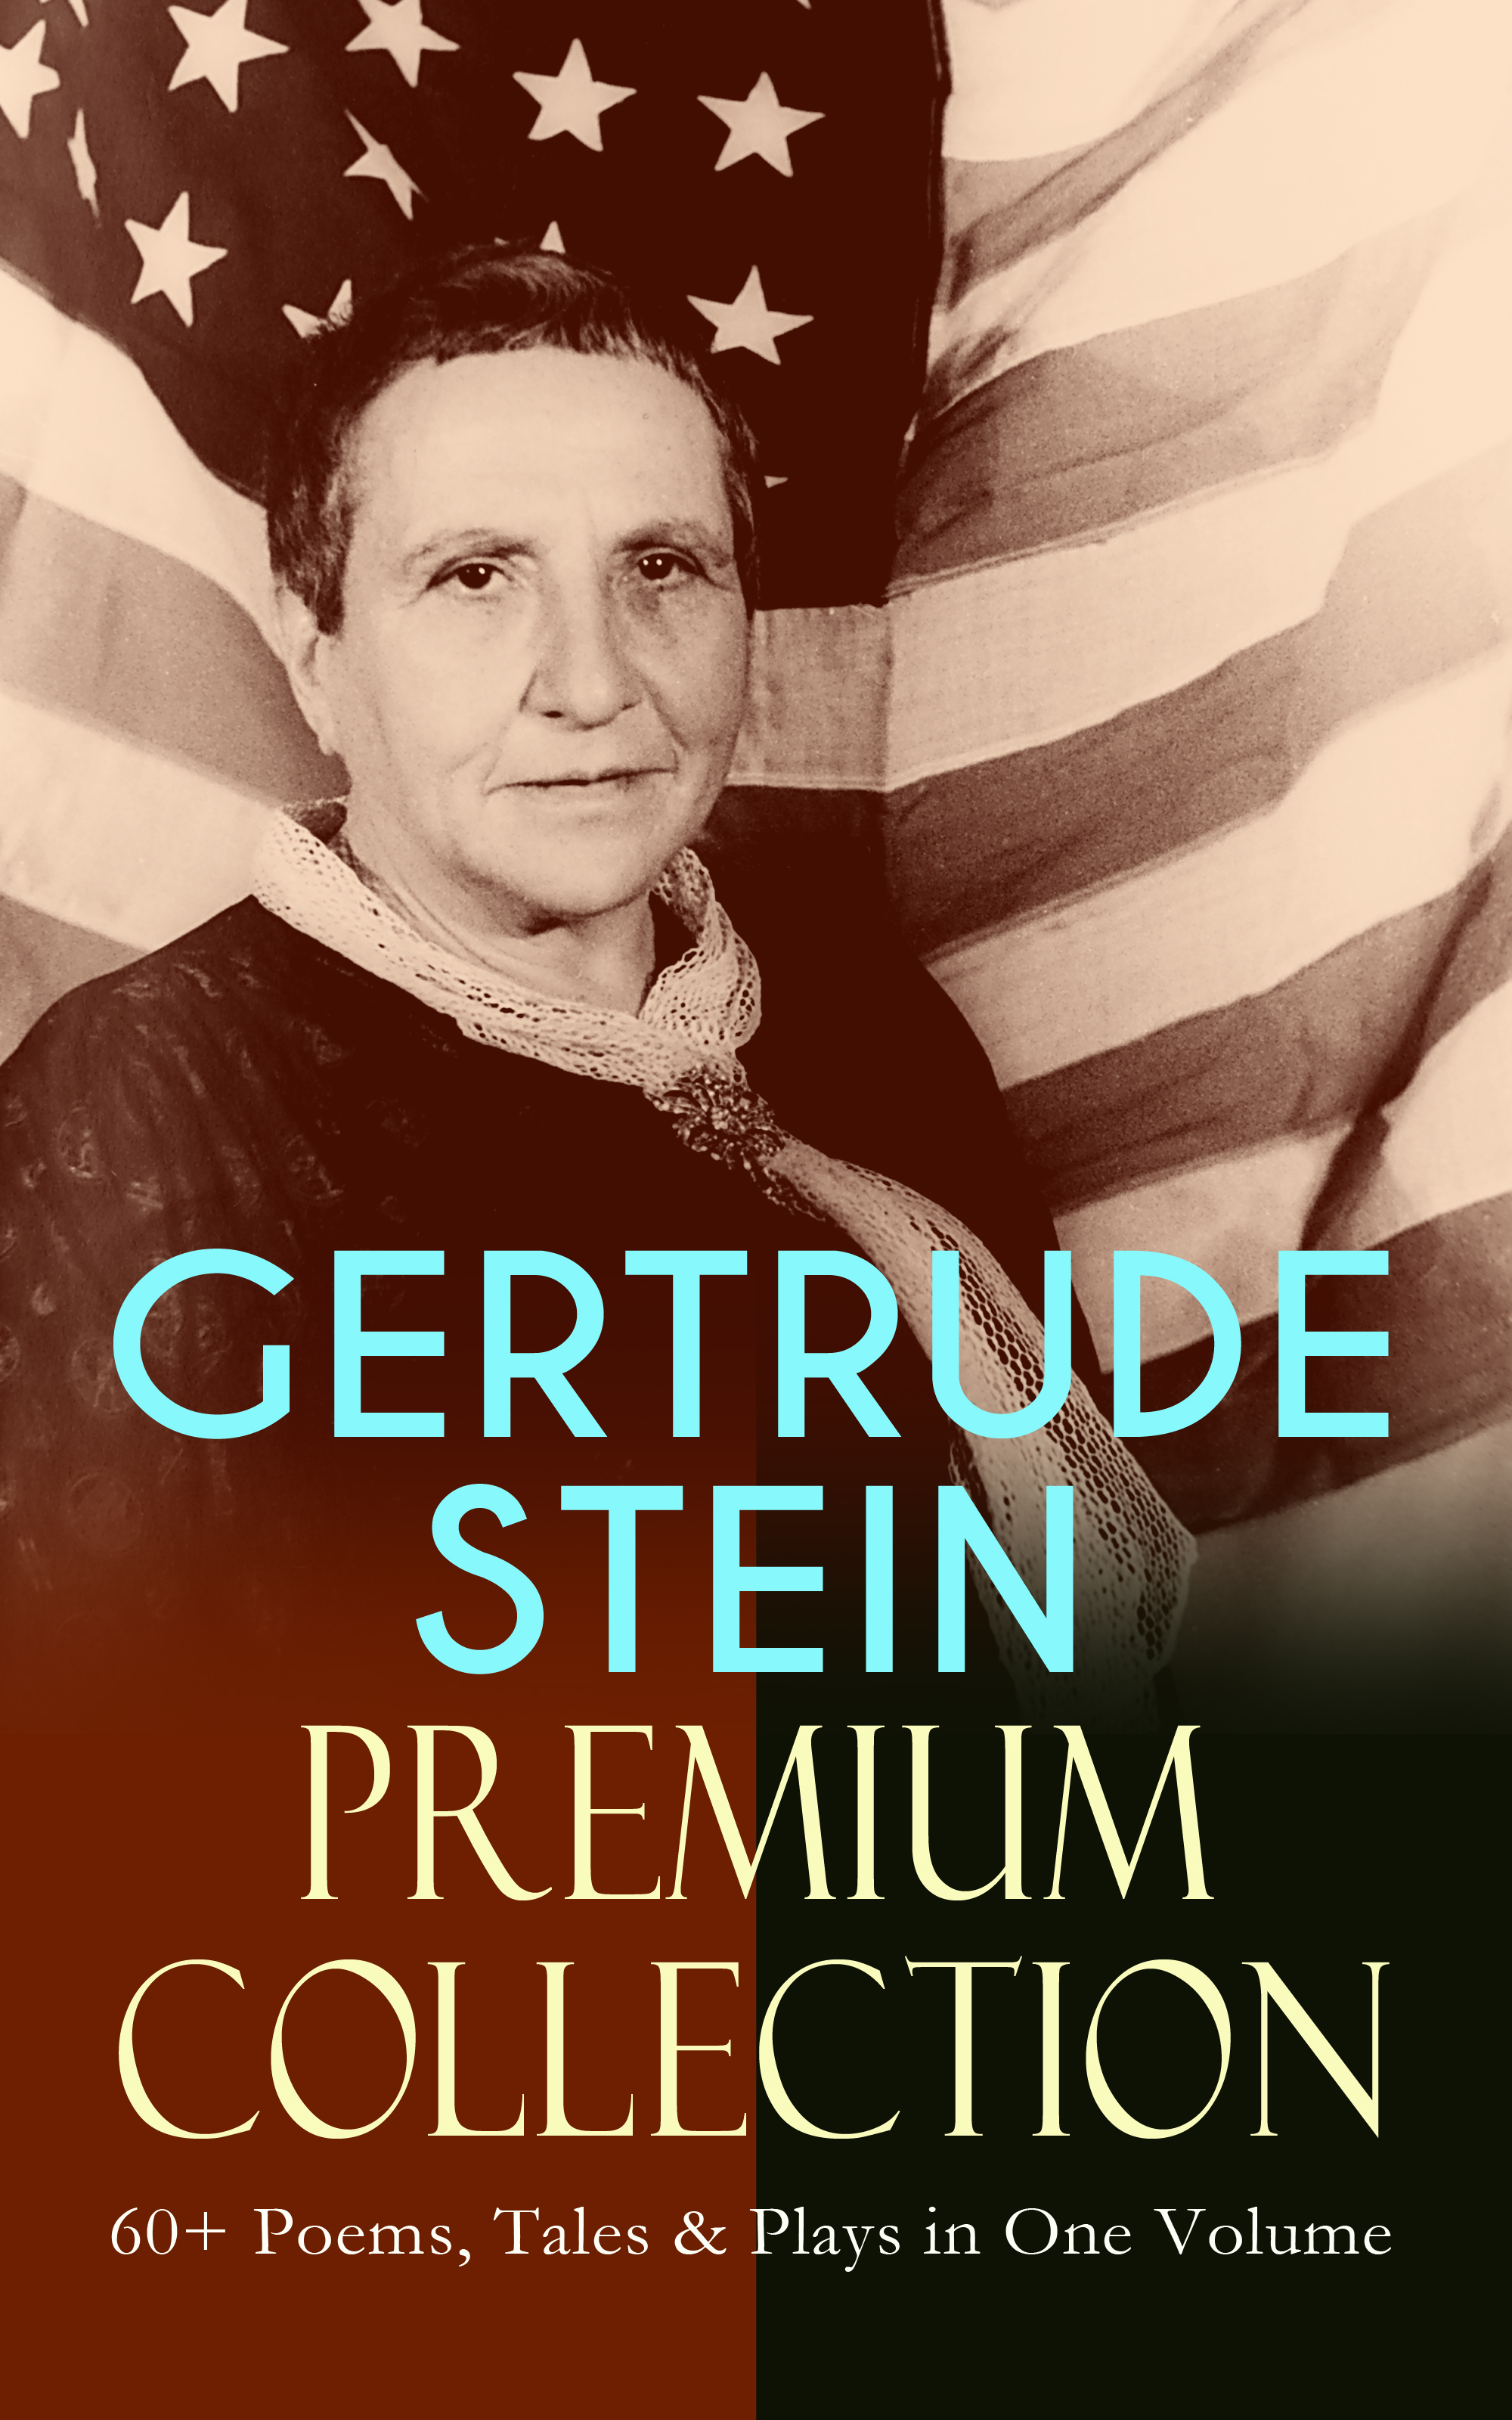 Фото - Gertrude Stein GERTRUDE STEIN Premium Collection: 60+ Poems, Tales & Plays in One Volume lillian gertrude kimball elementary english 1